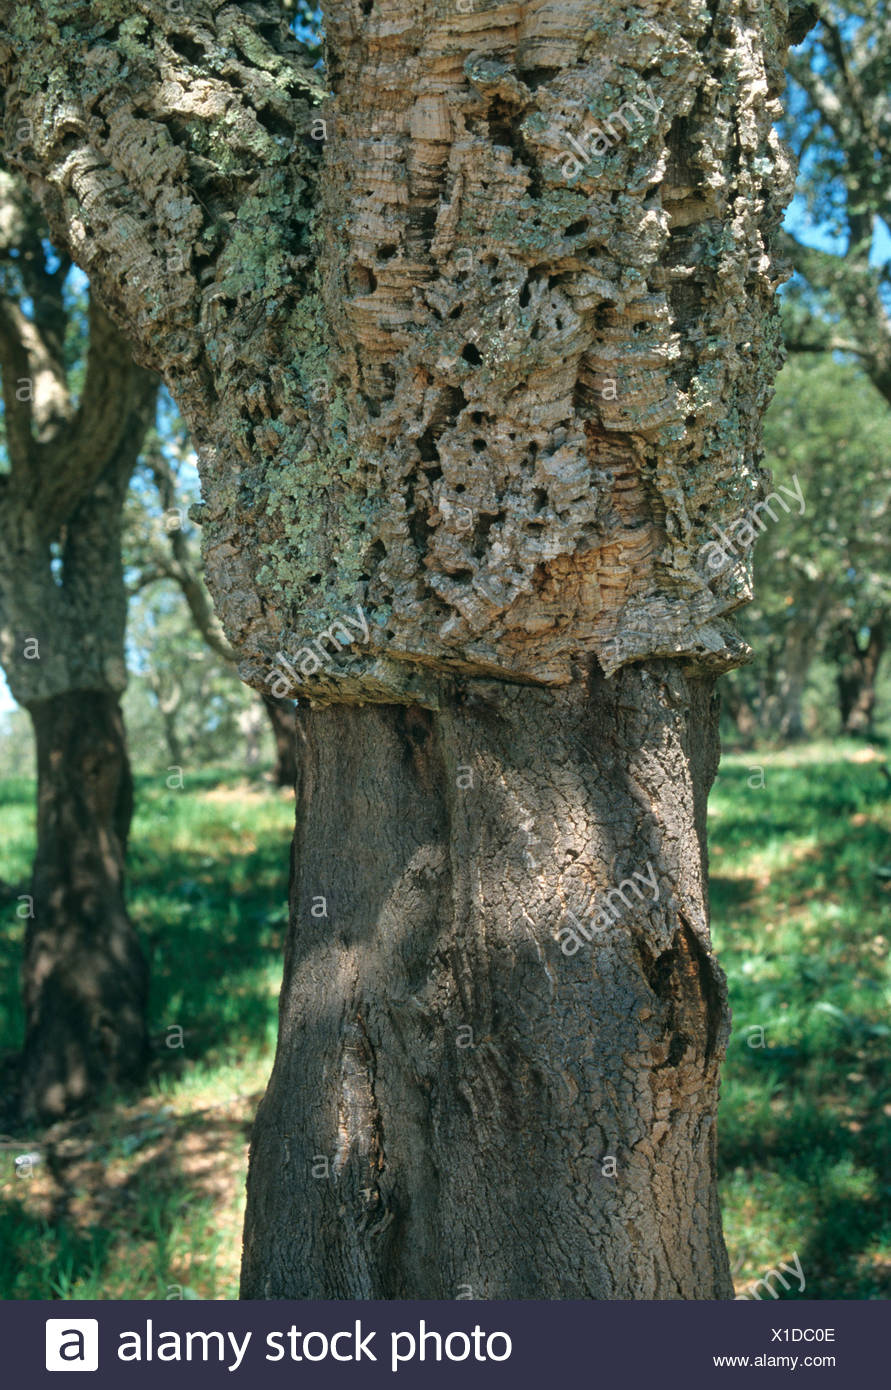 Cork trees, Alentejo, Portugal, Europe Stock Photo